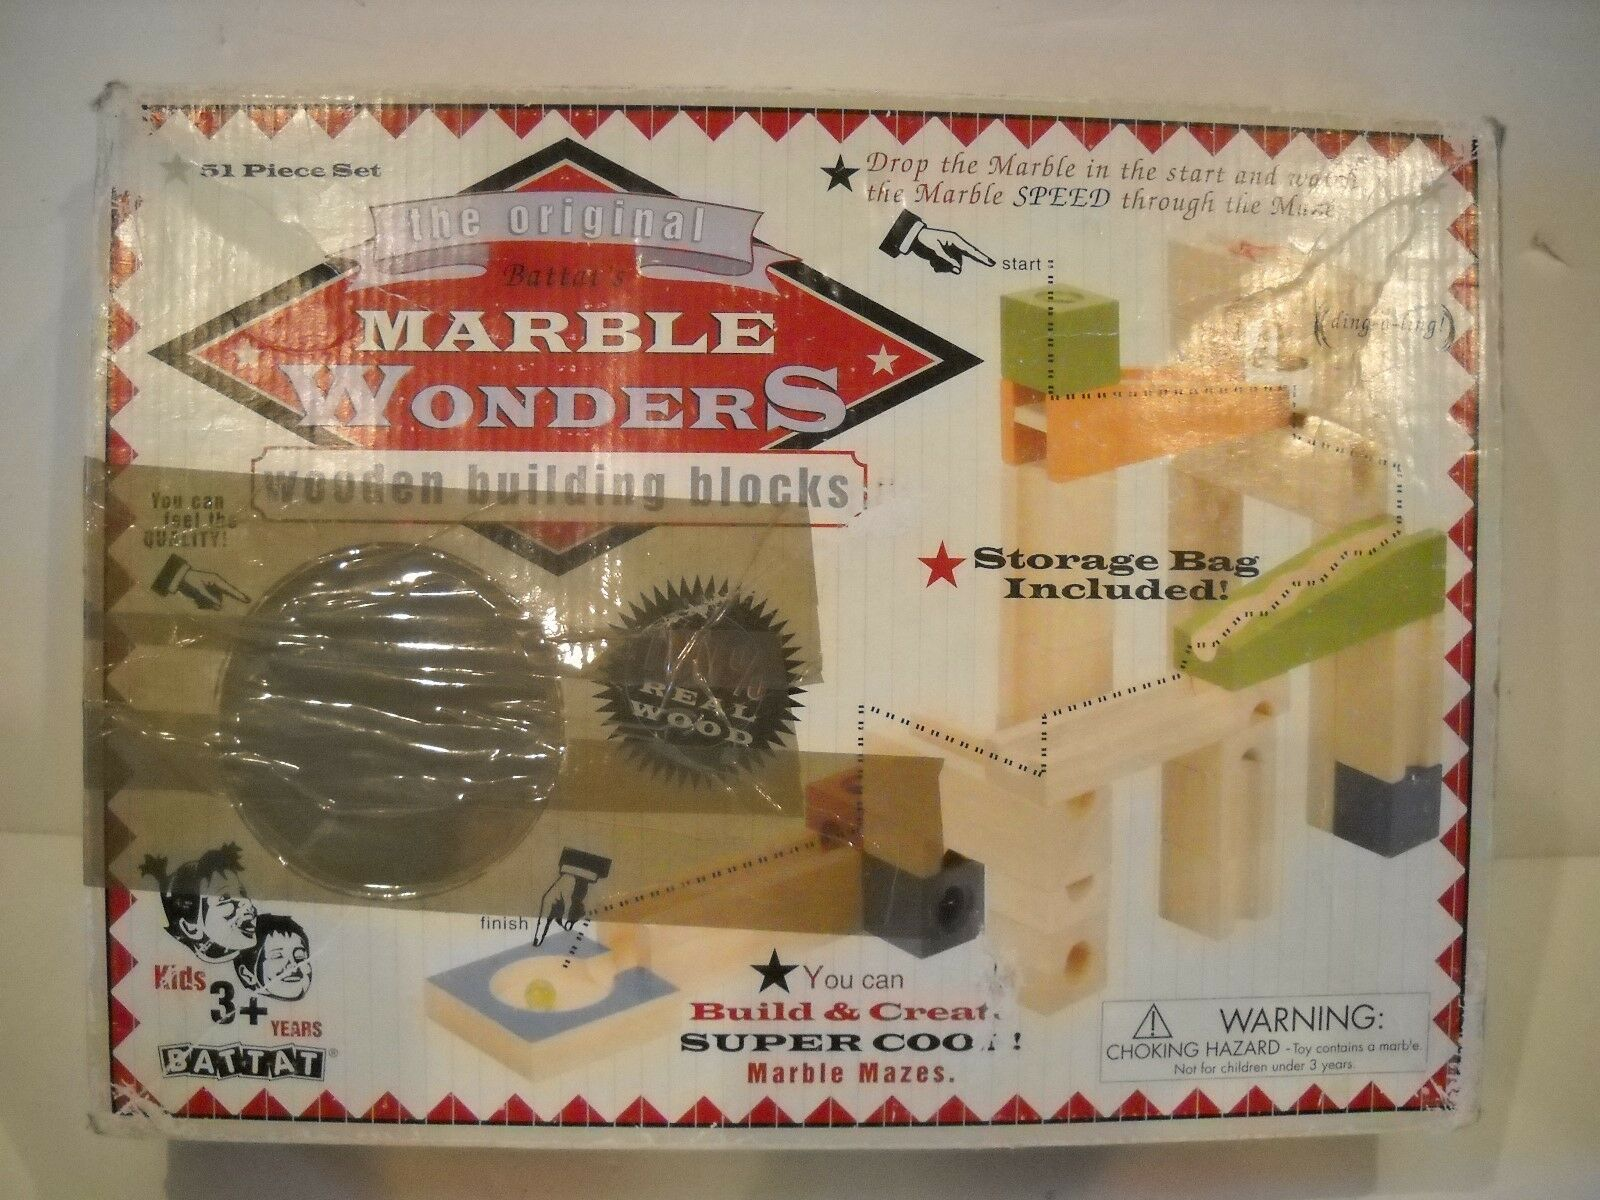 Battat's Marble Wonders Wooden Building Blocks Marble Track Toy 51pcs retro used